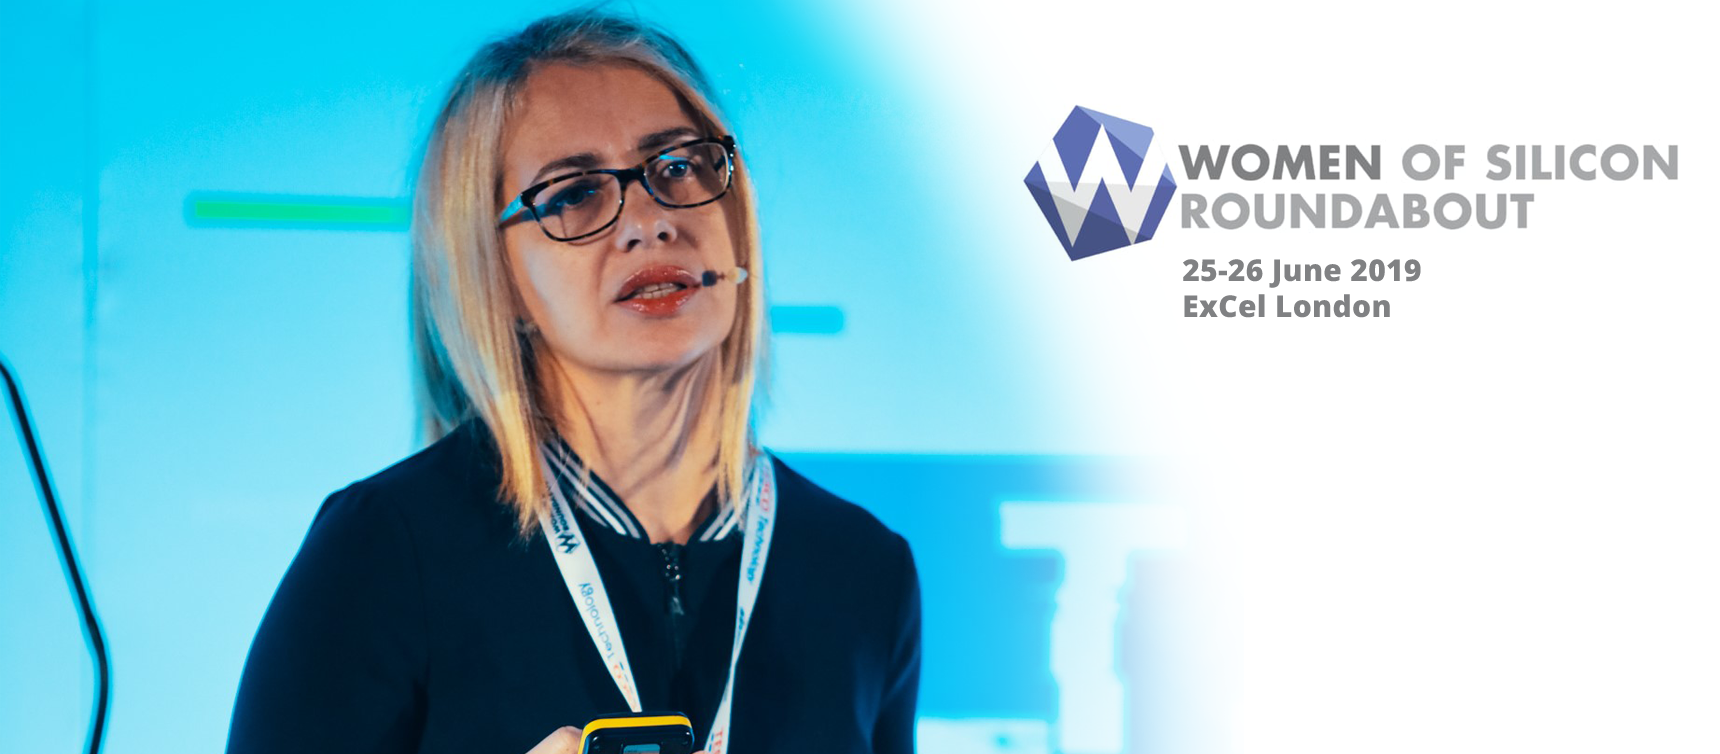 Kinga Incze speaking at the Women of Silicon Roundabout 2019